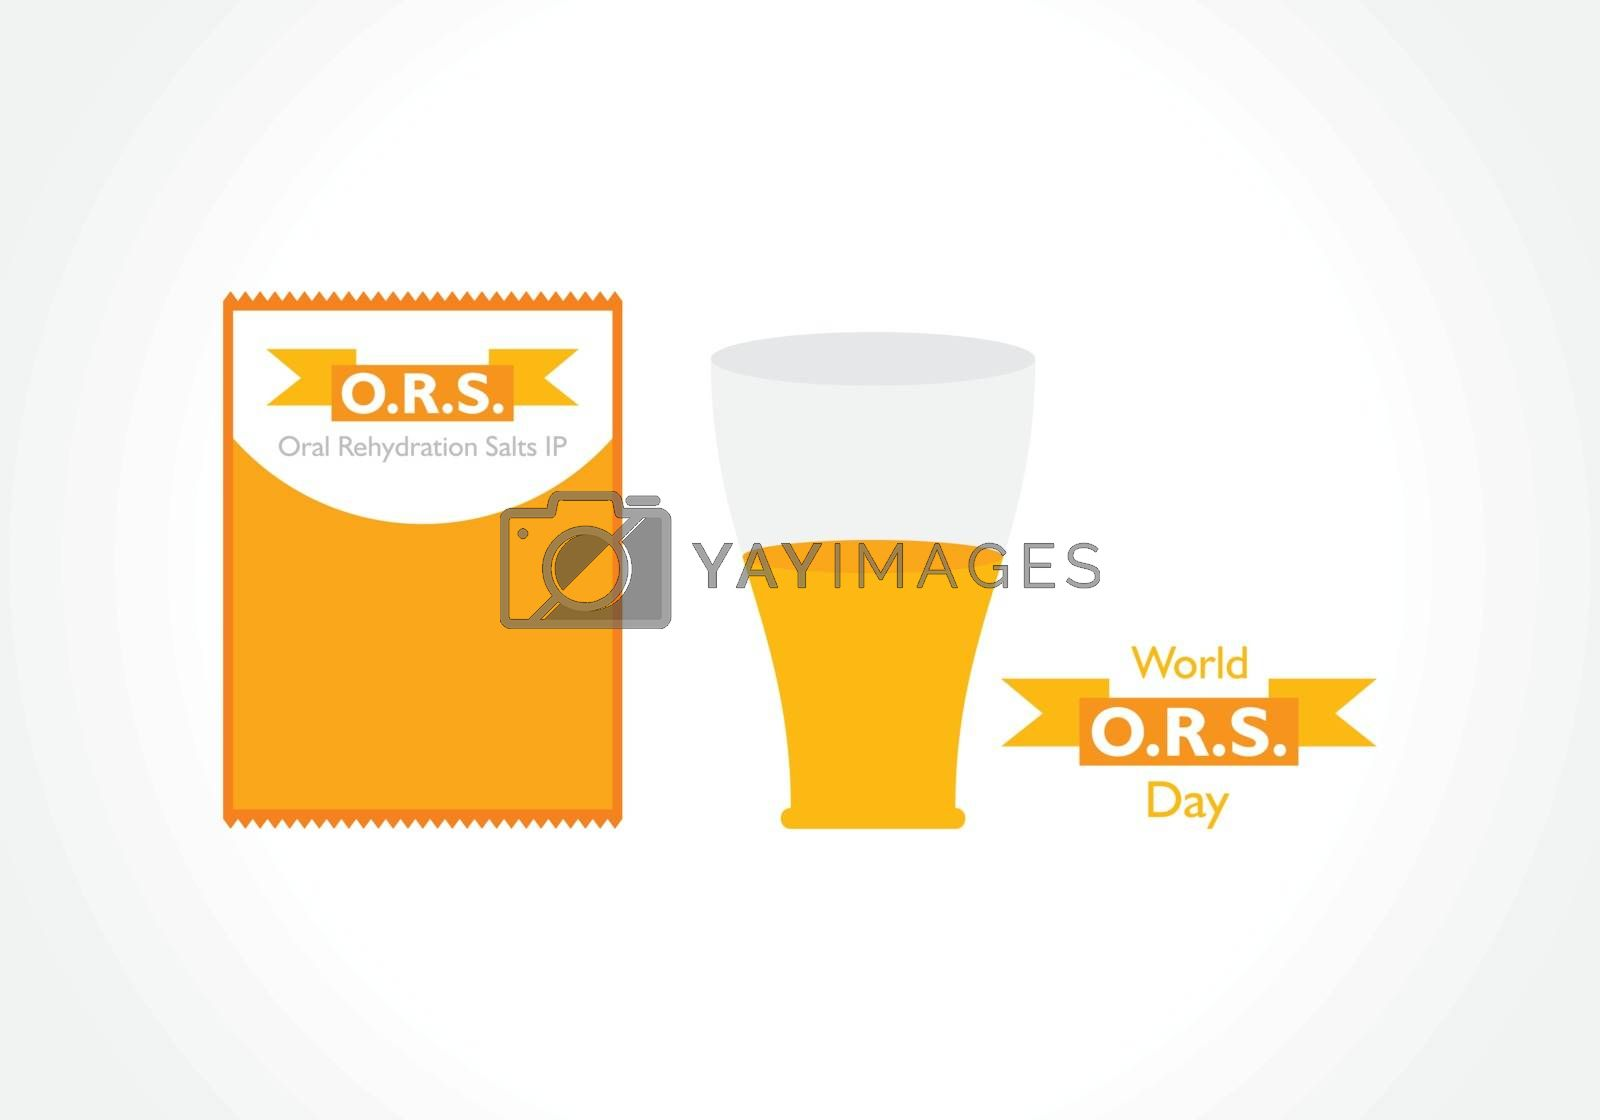 Vector illustration for World ORS(Oral Rehydration Salts IP) day observed on 29th July